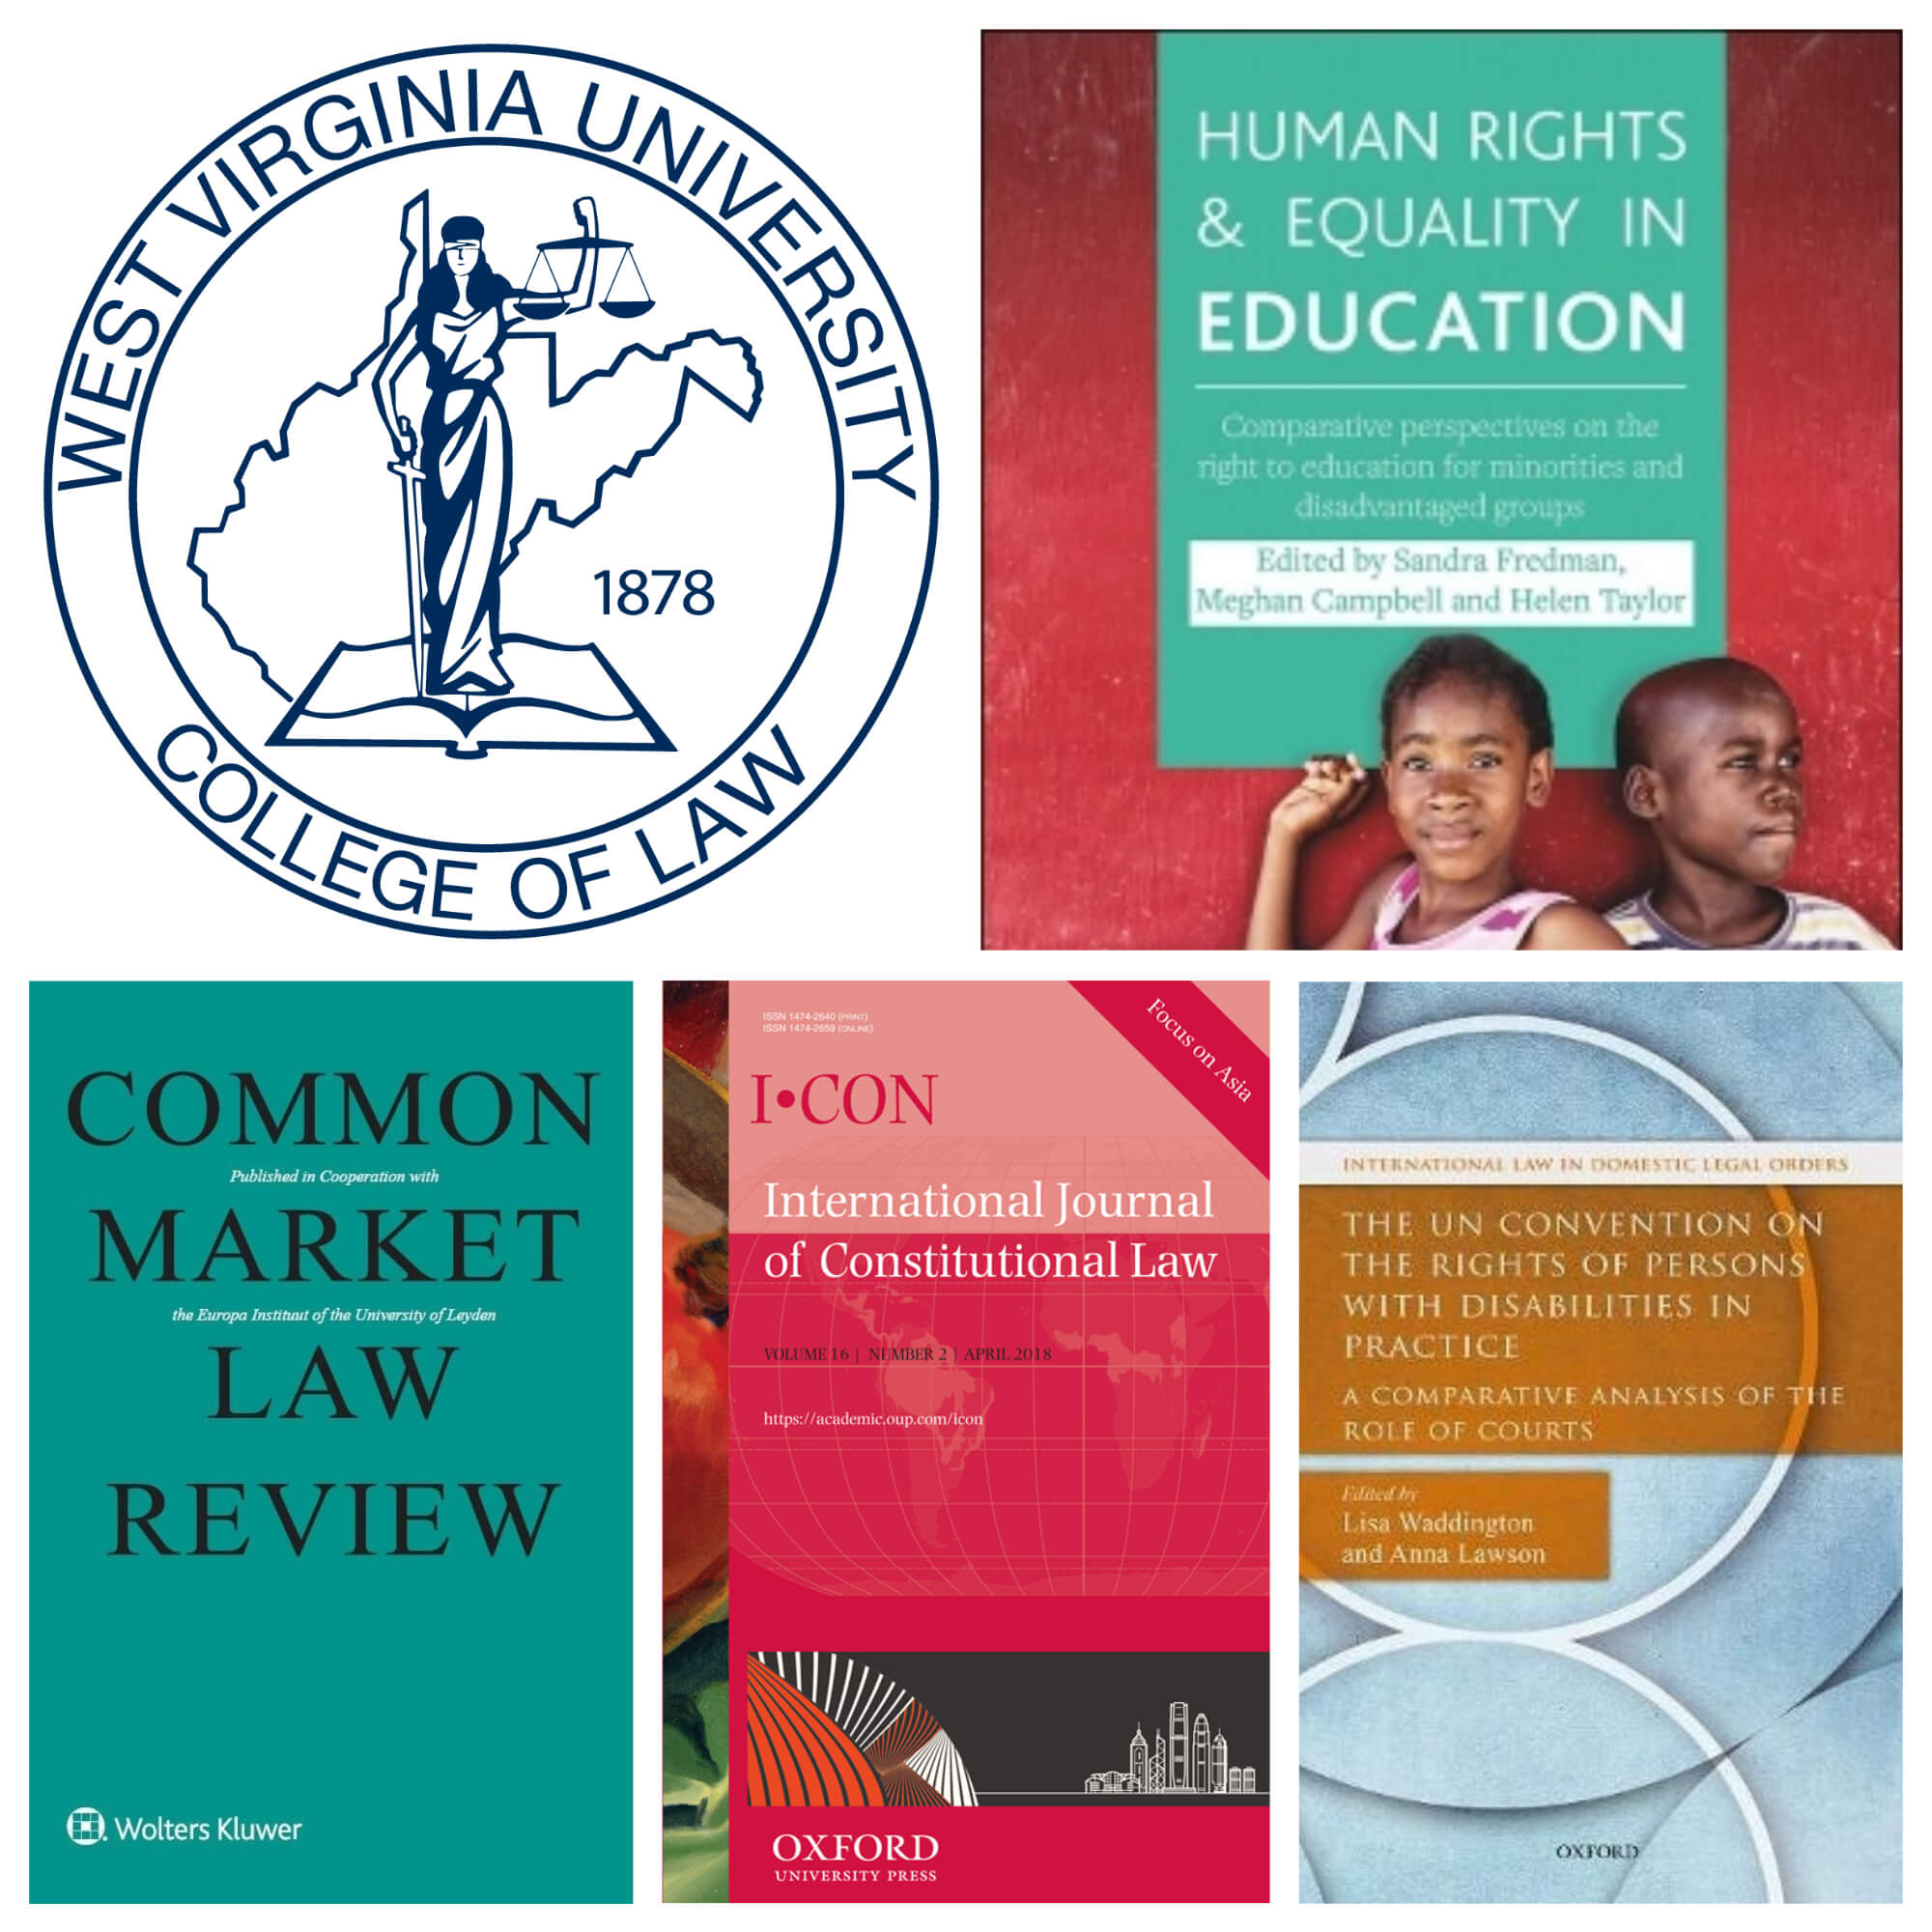 Latest Publications from the OxHRH Team and Associates